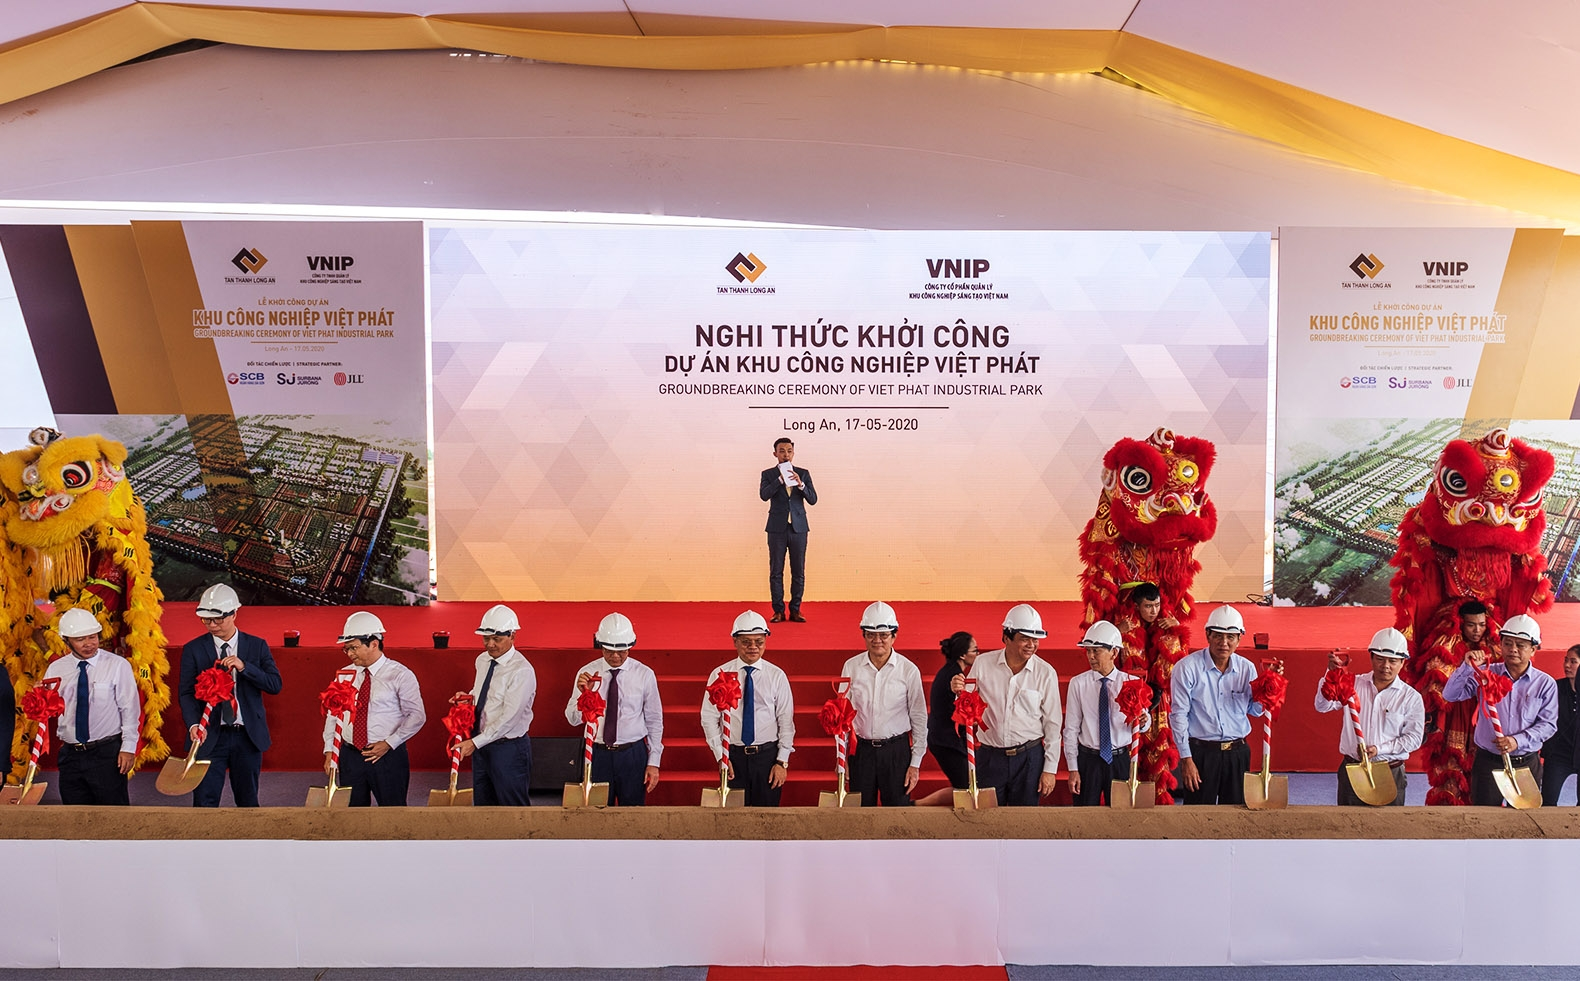 1,800 hectare Viet Phat Industrial Park and urban area started in Long An province